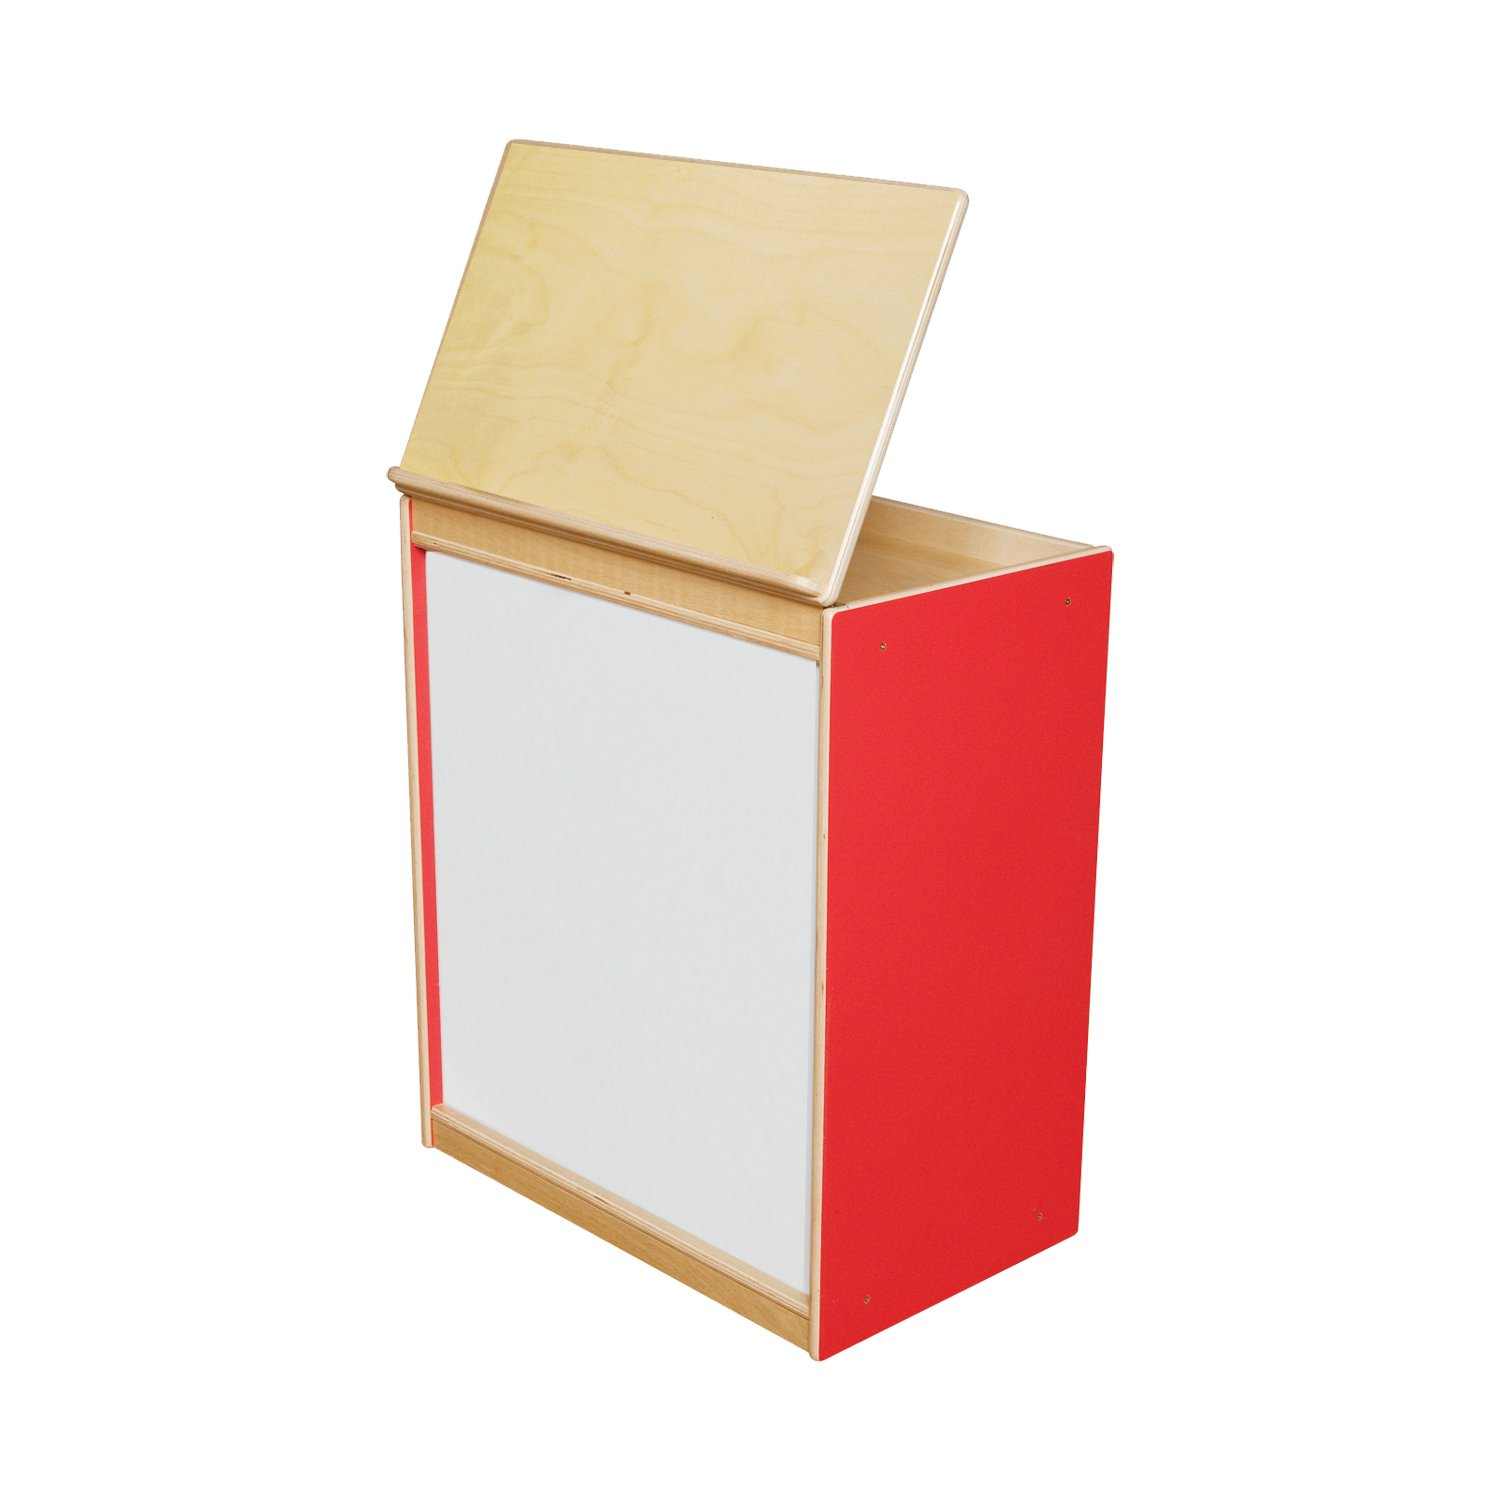 Wood Designs 54100R Strawberry Red Big Book Display with Magnetic Markerboard, 28'' Height, 18'' Width, 26.5'' Length